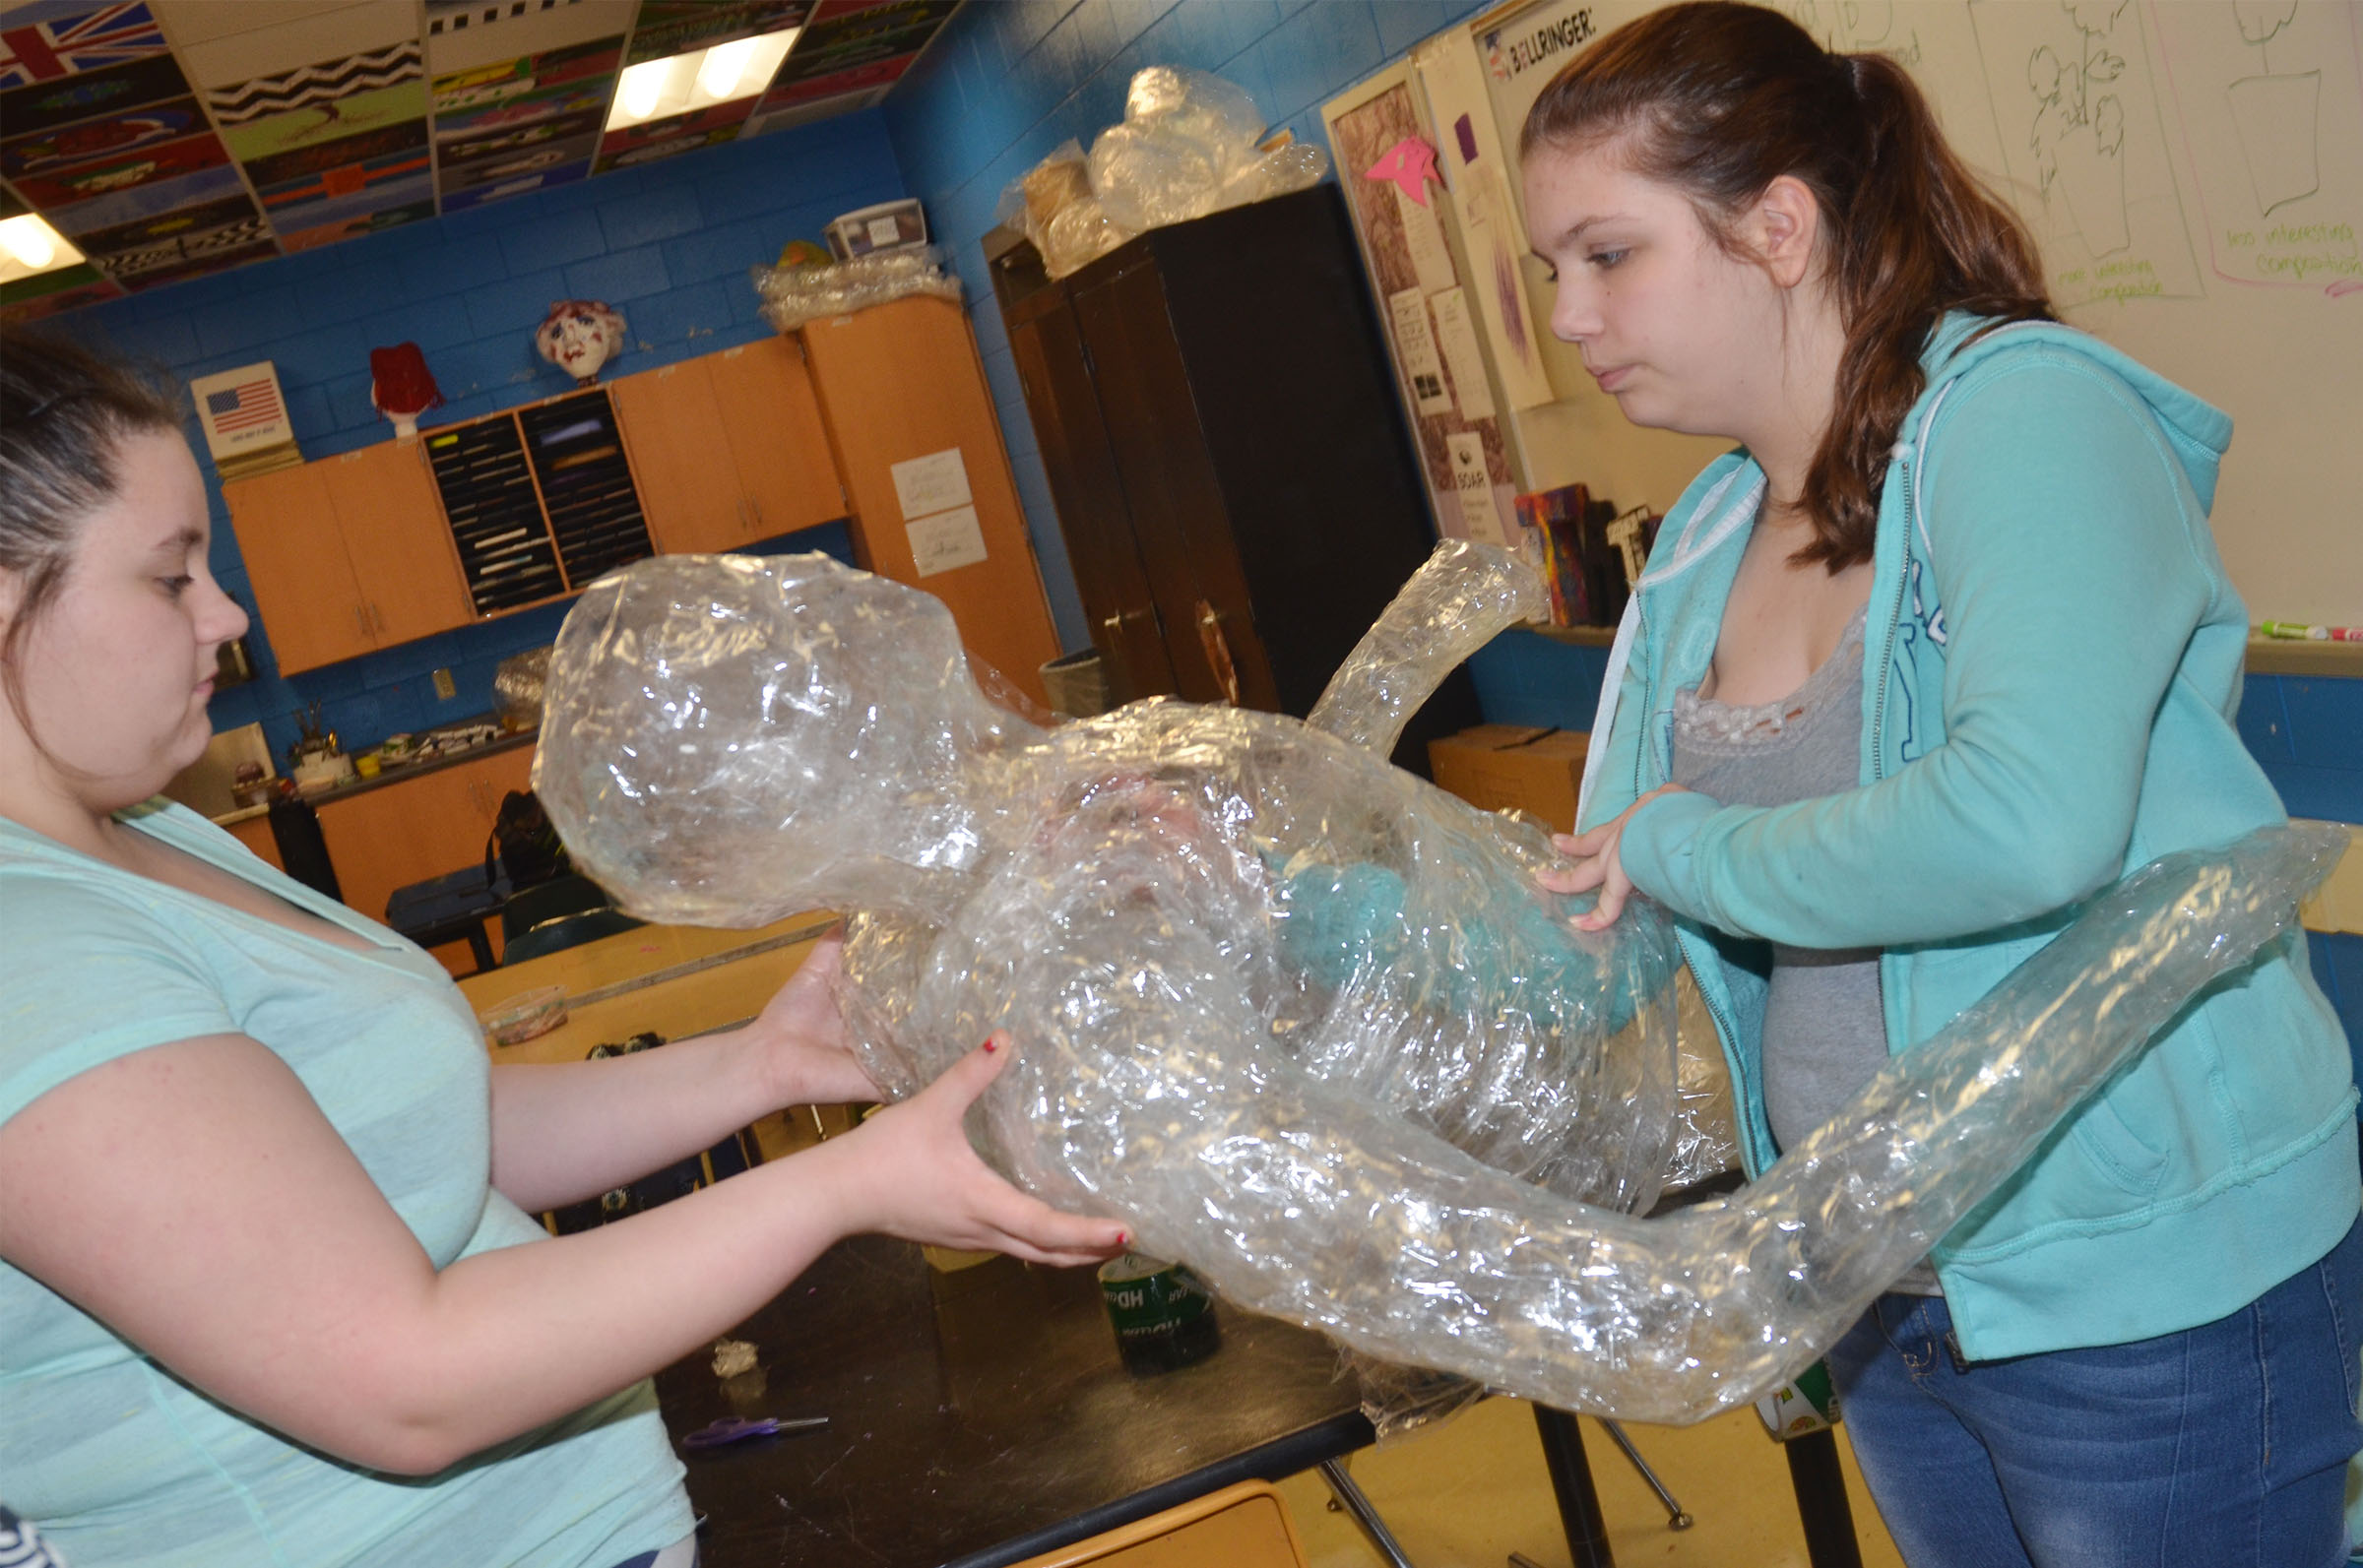 CHS sophomore Amanda Dotson, at left, and freshman Shelby Hunt put their tape person together.